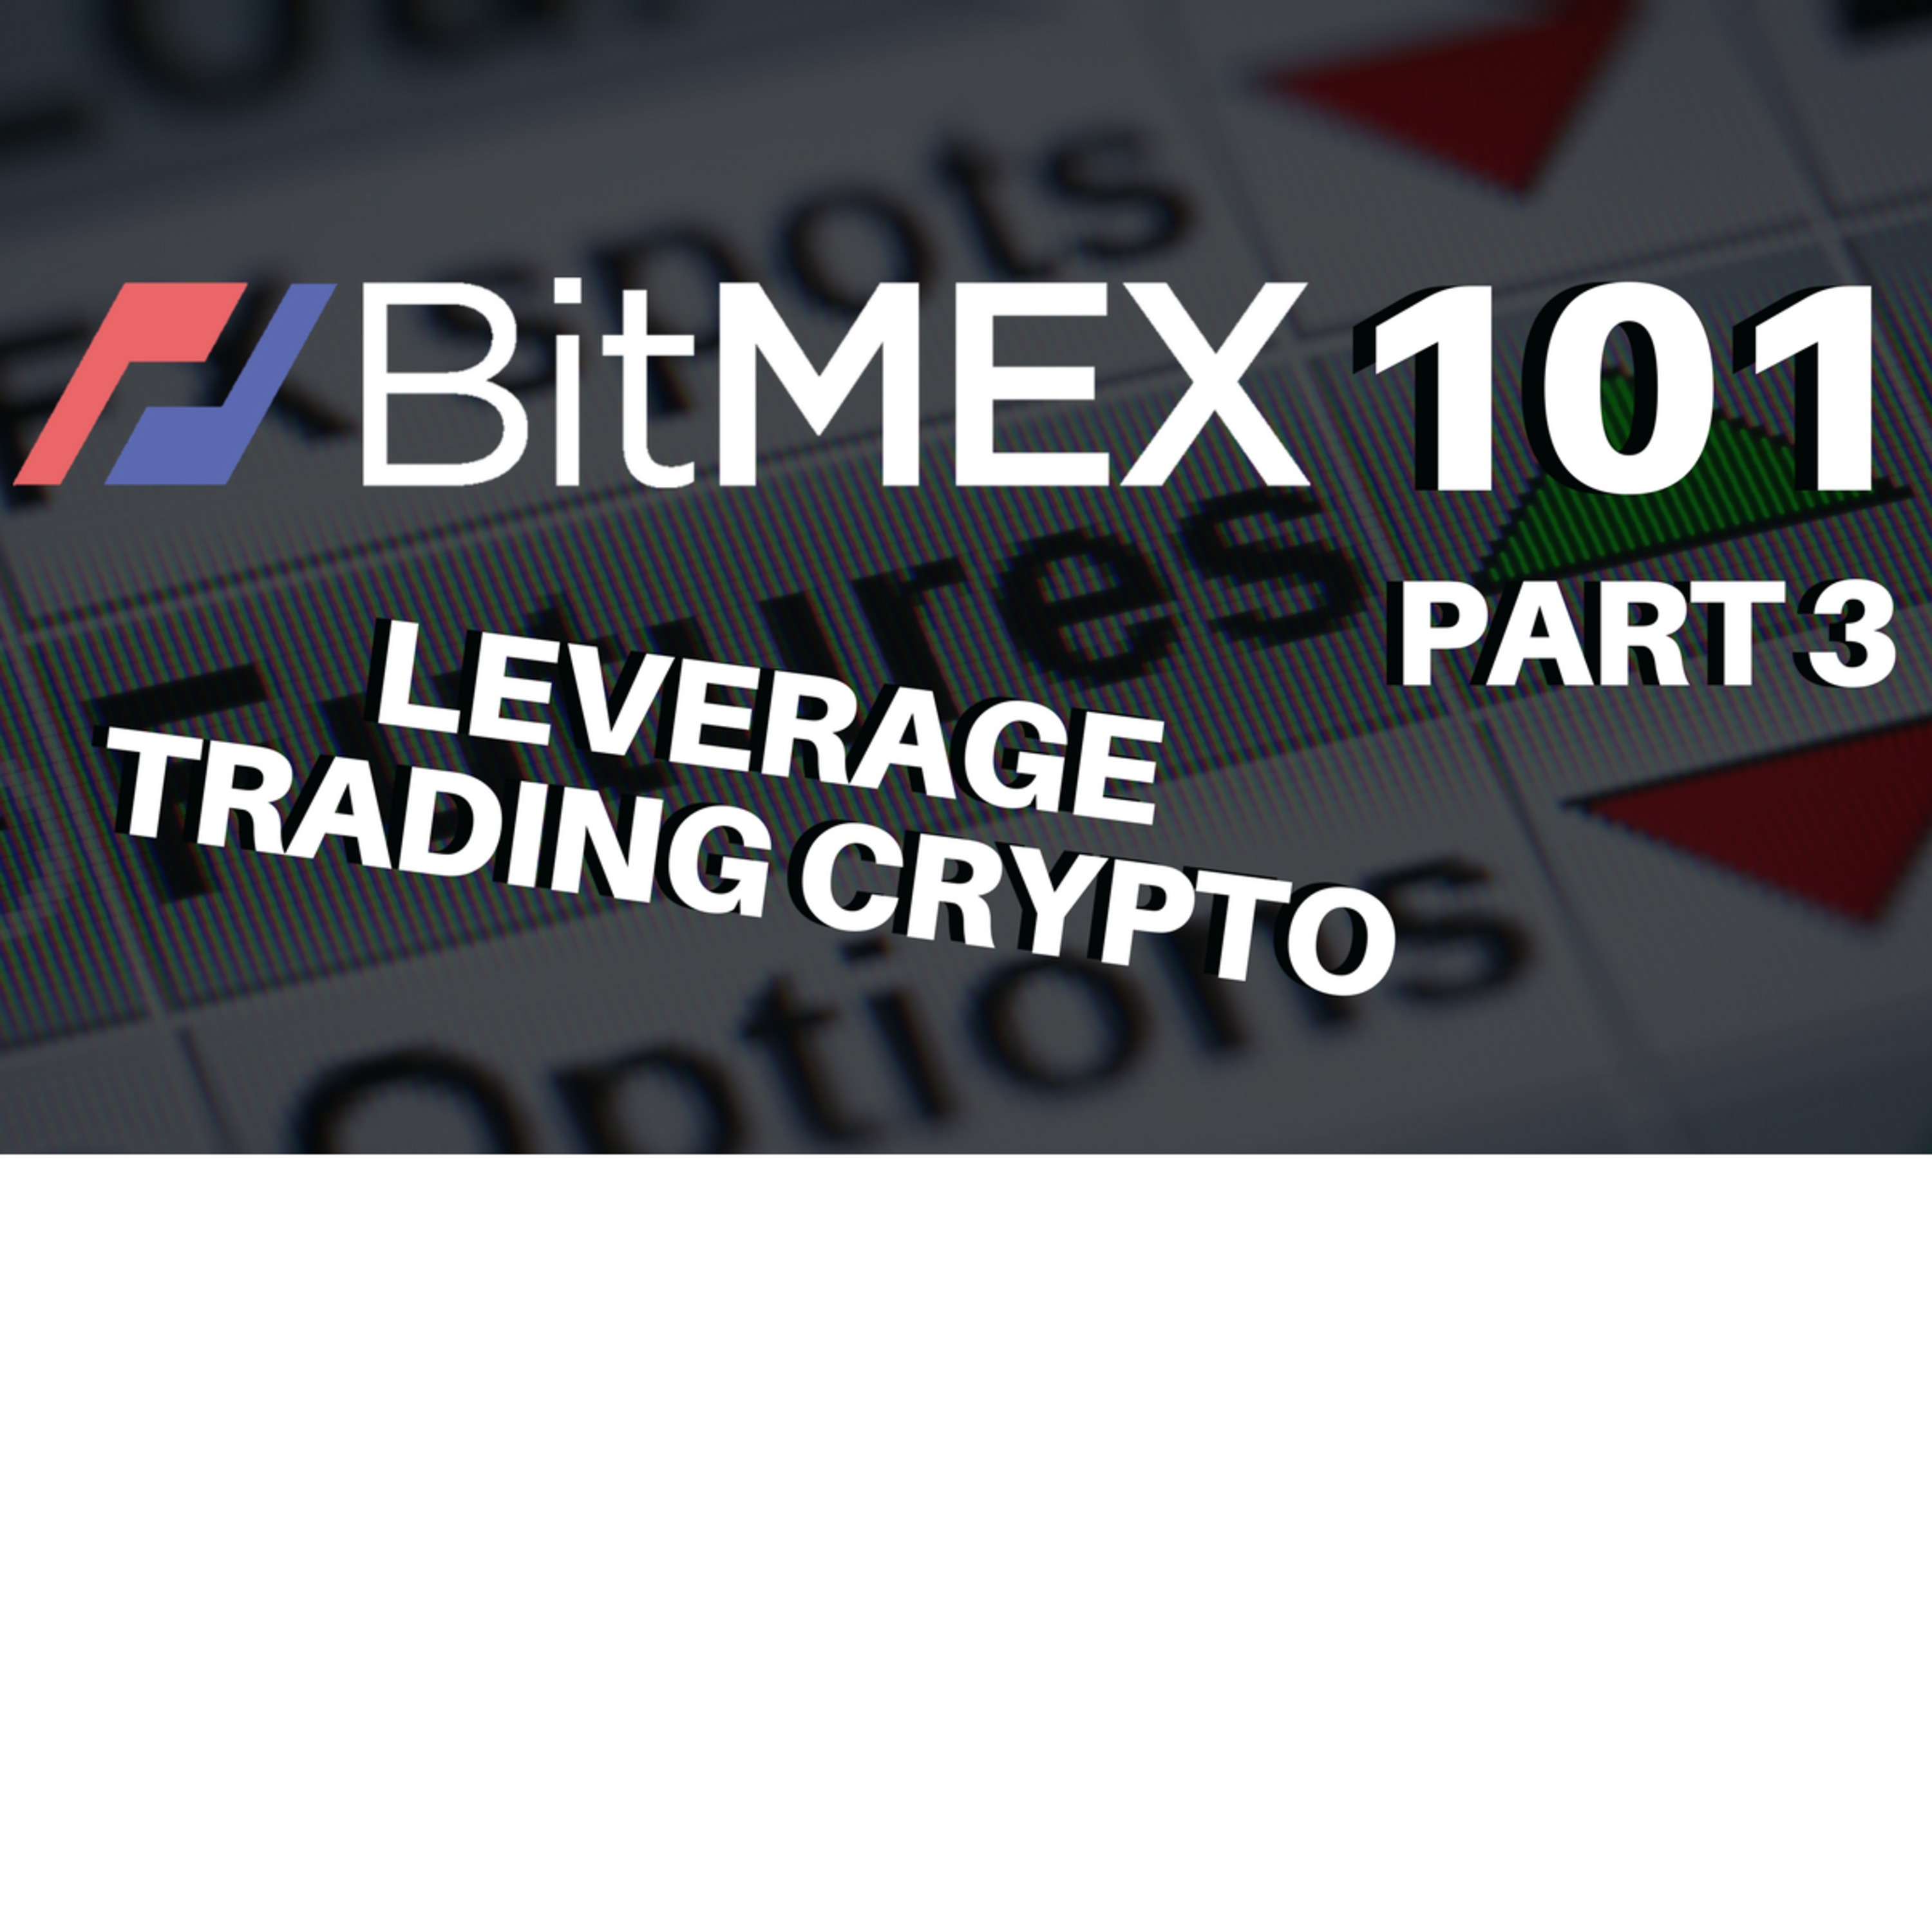 BitMEX 101 - How $95 Turned into $1,000 in 10 days! by Trading